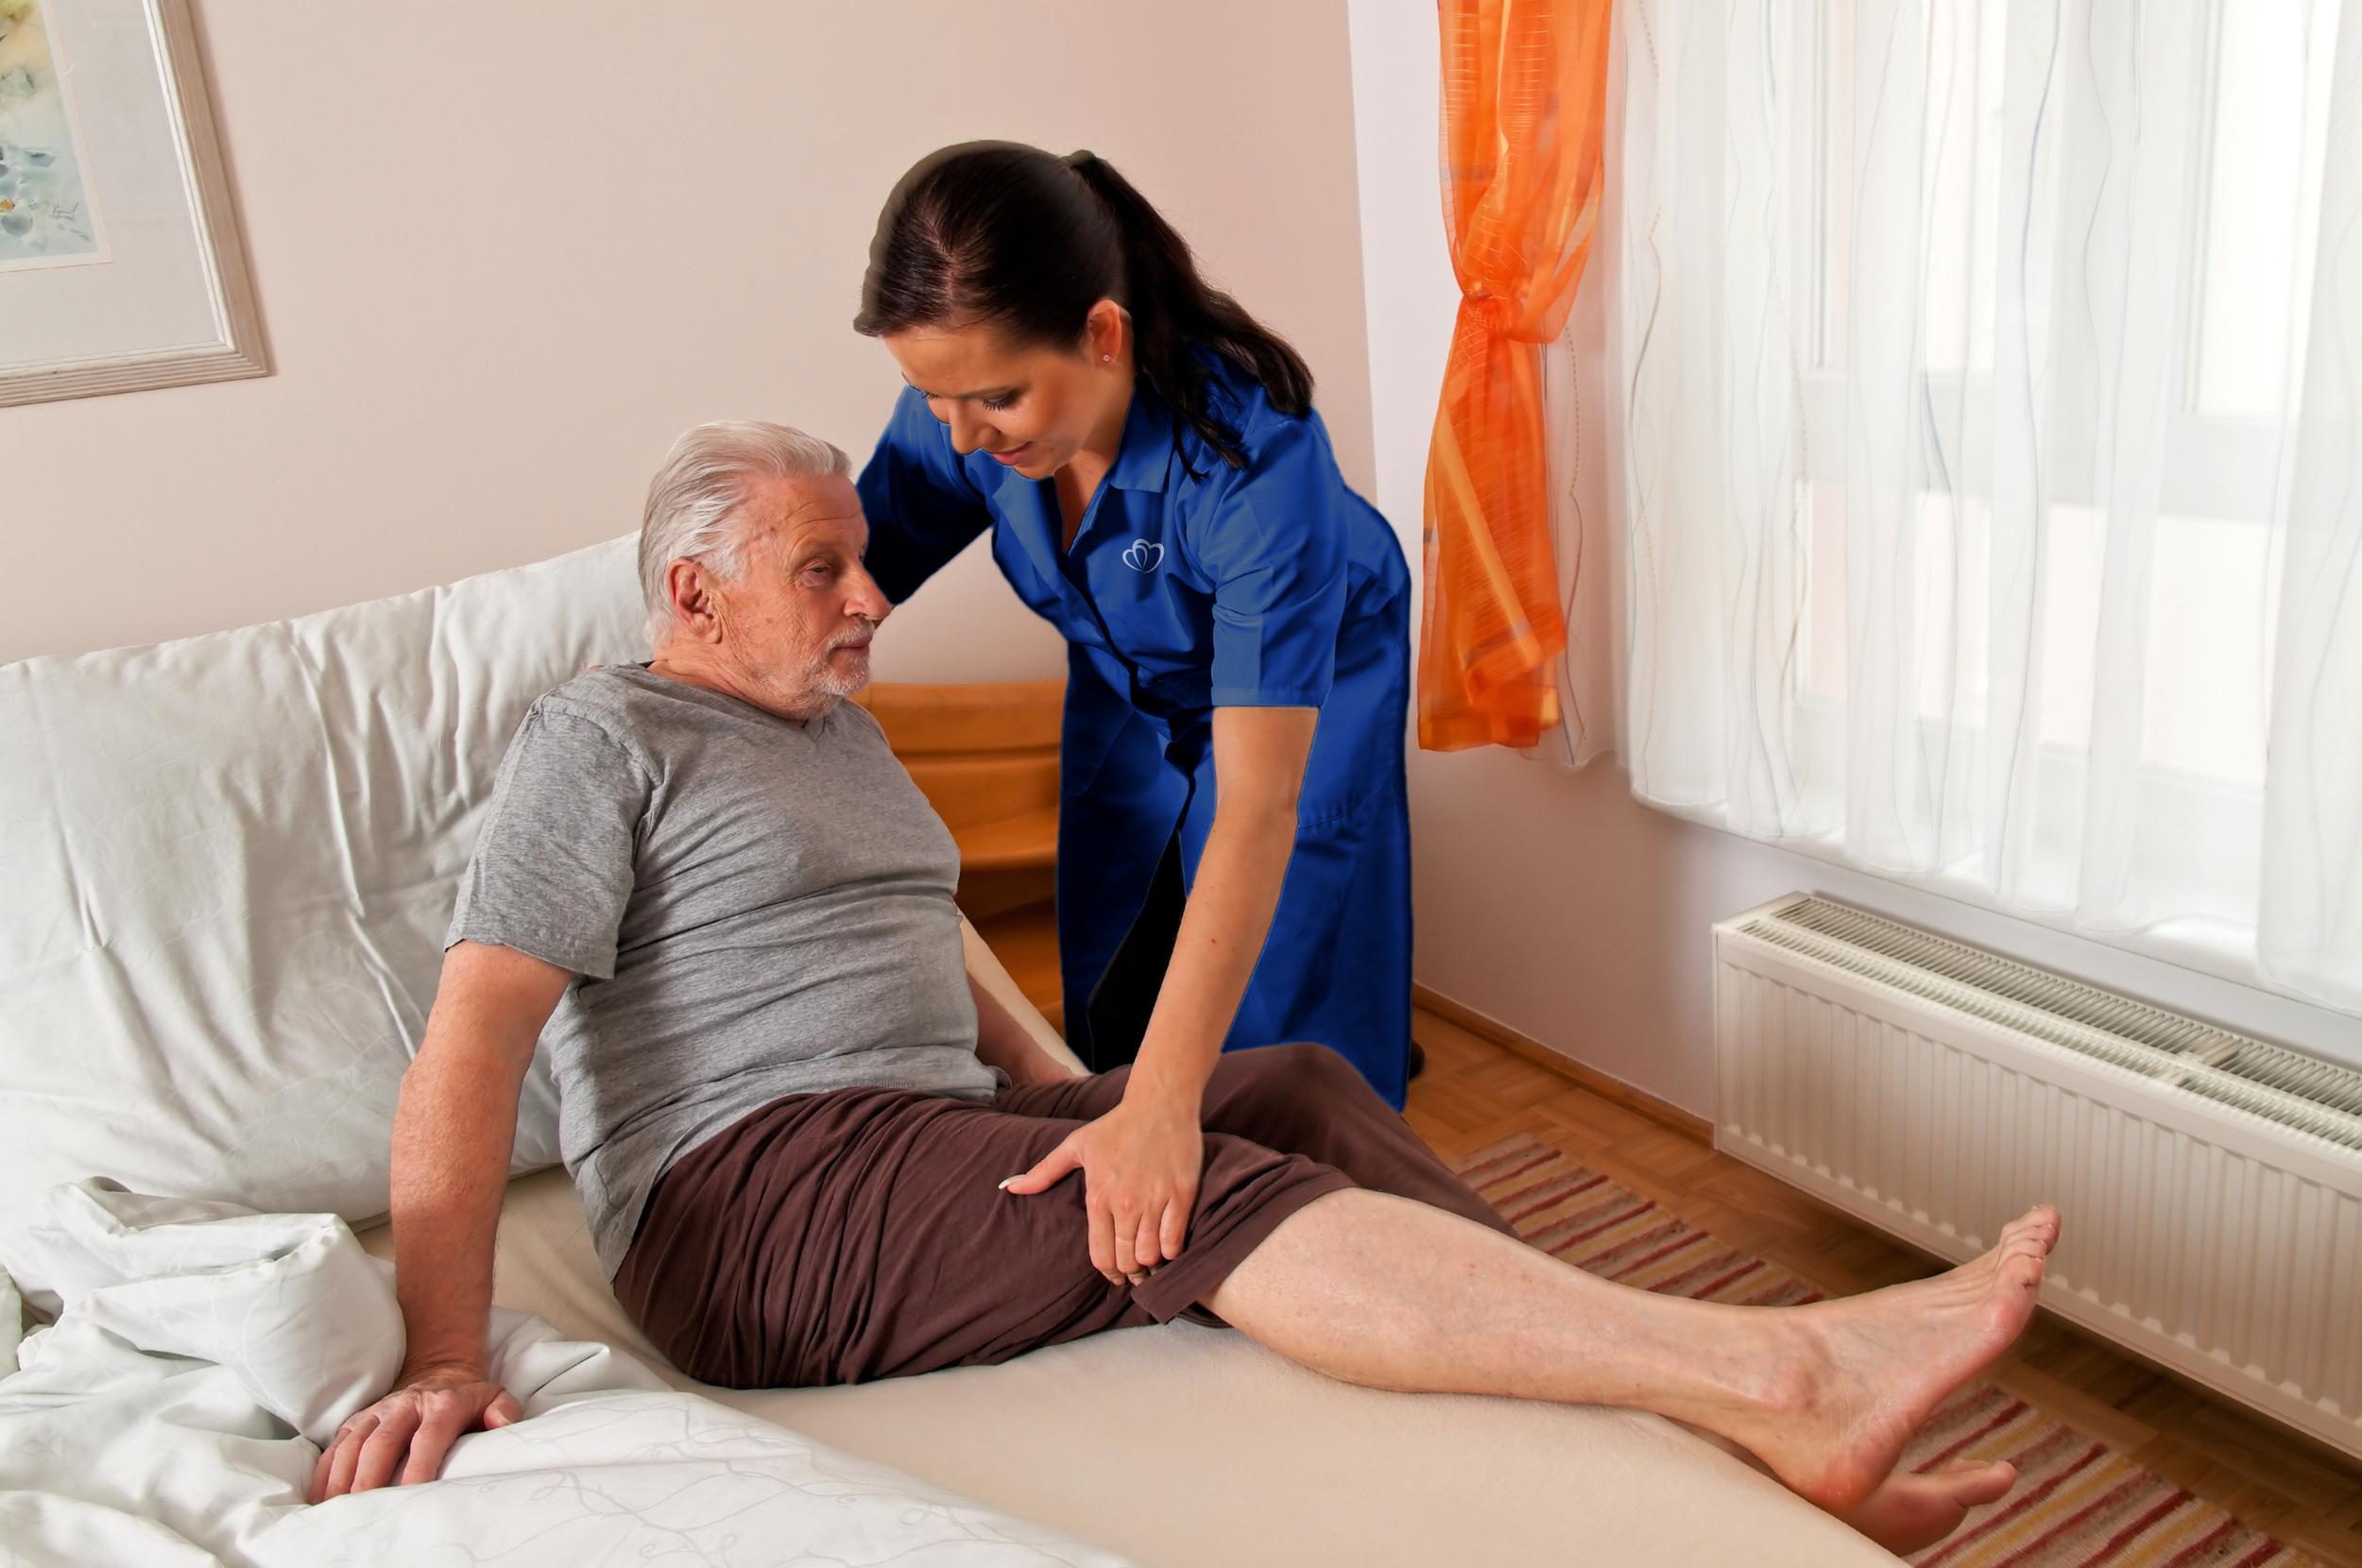 Assurance Home Care nurse helping patient into bed